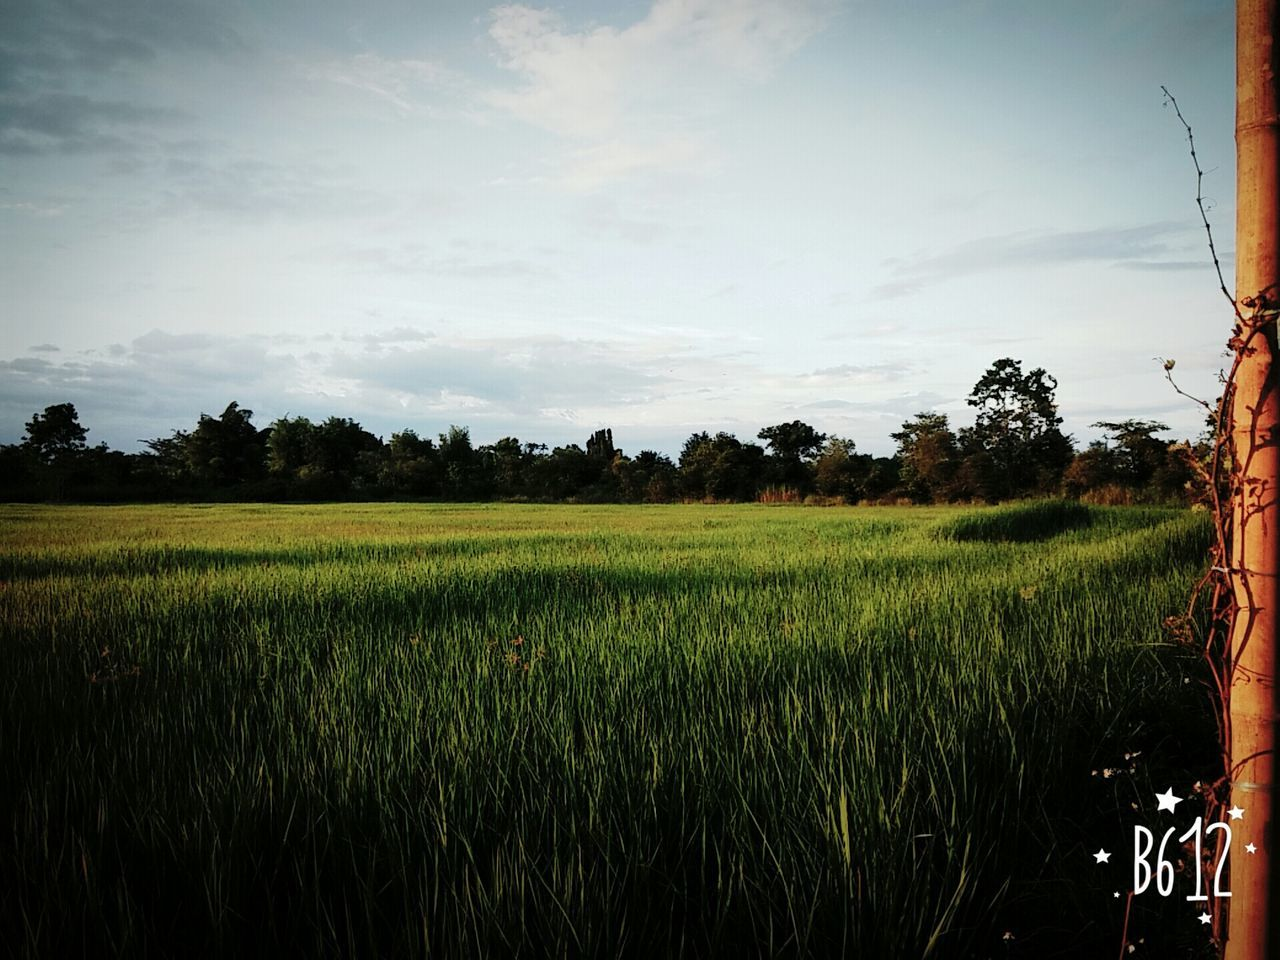 agriculture, field, growth, crop, farm, landscape, tree, nature, rural scene, tranquil scene, rice paddy, scenics, tranquility, green color, beauty in nature, rice - cereal plant, cereal plant, no people, plant, sky, outdoors, grass, day, wheat, food